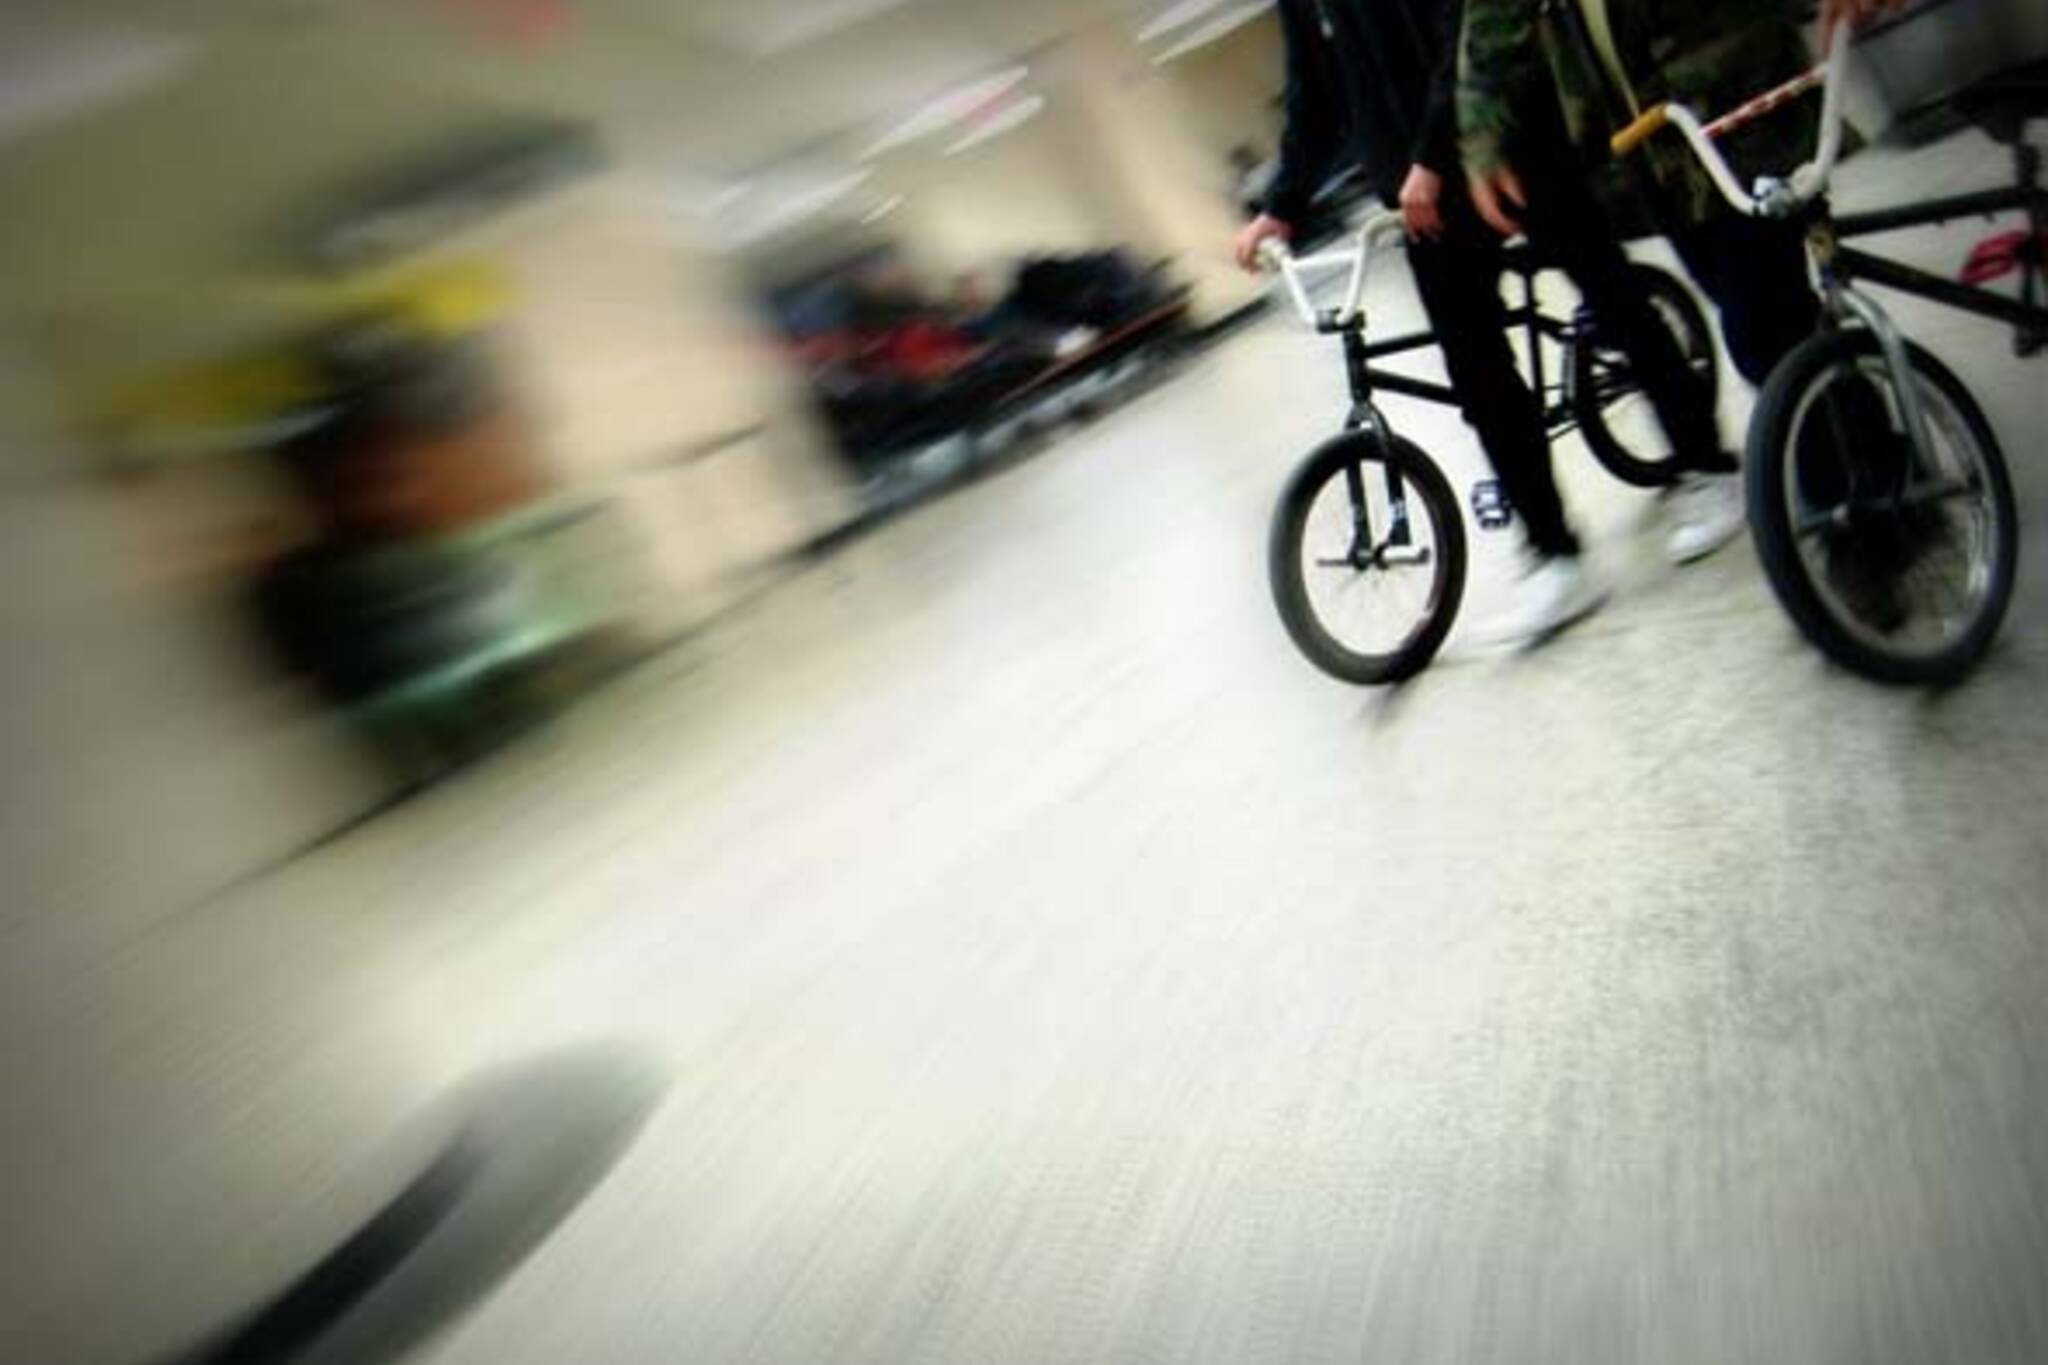 BMX Meets Union Station by nataschalcd